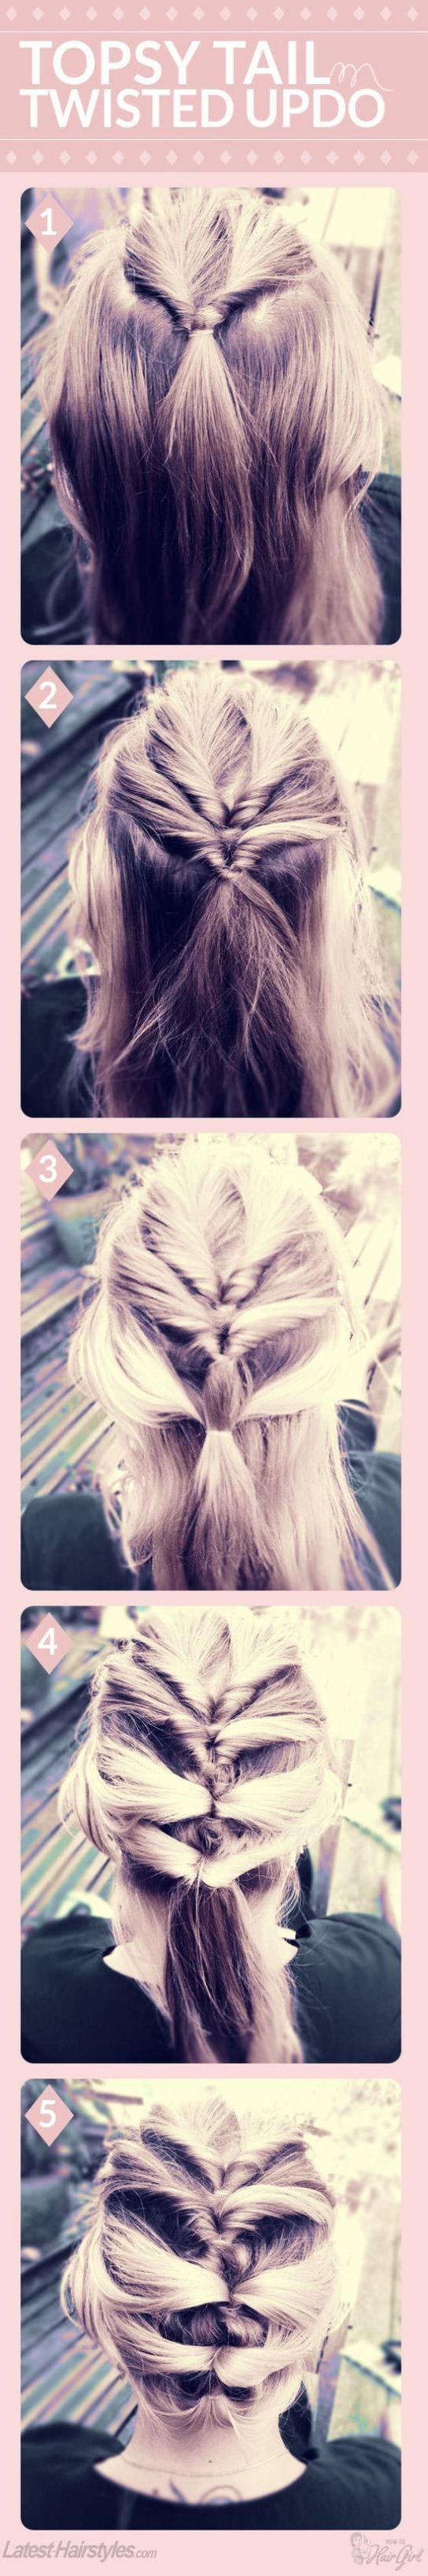 Pin by cassandra iacovano on coiffure pinterest easy updo and